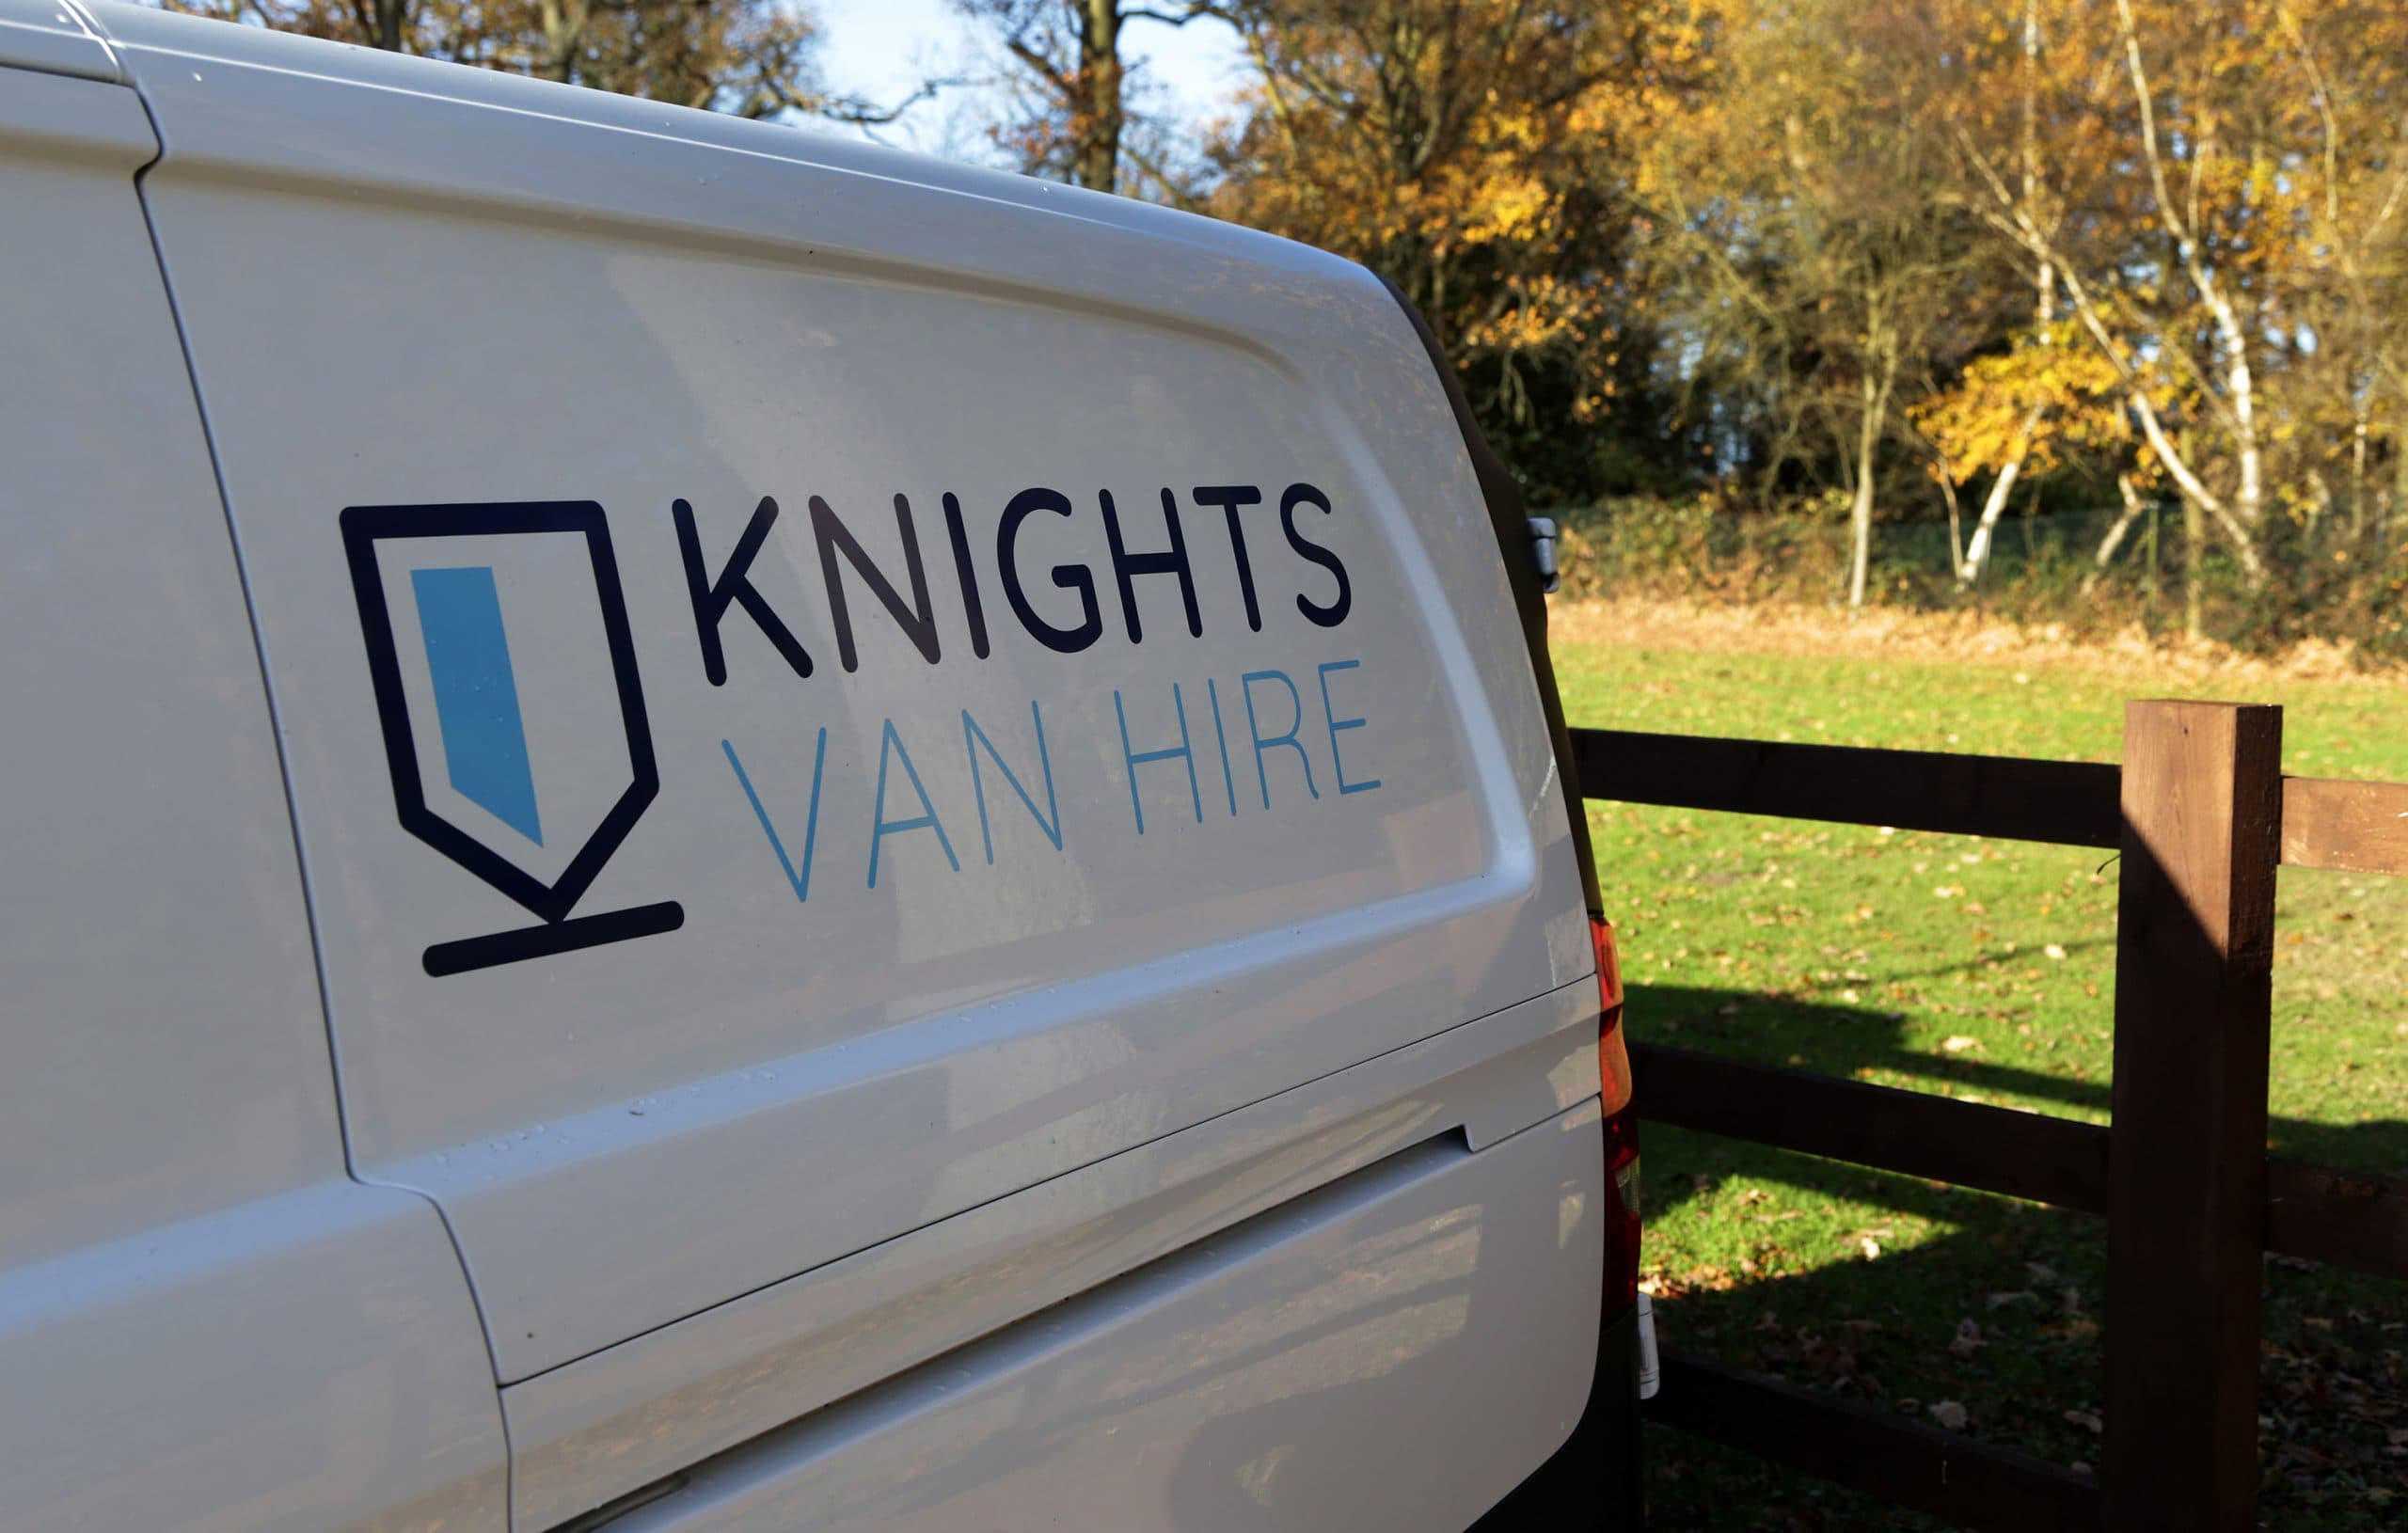 Knights Van Hire logo on van